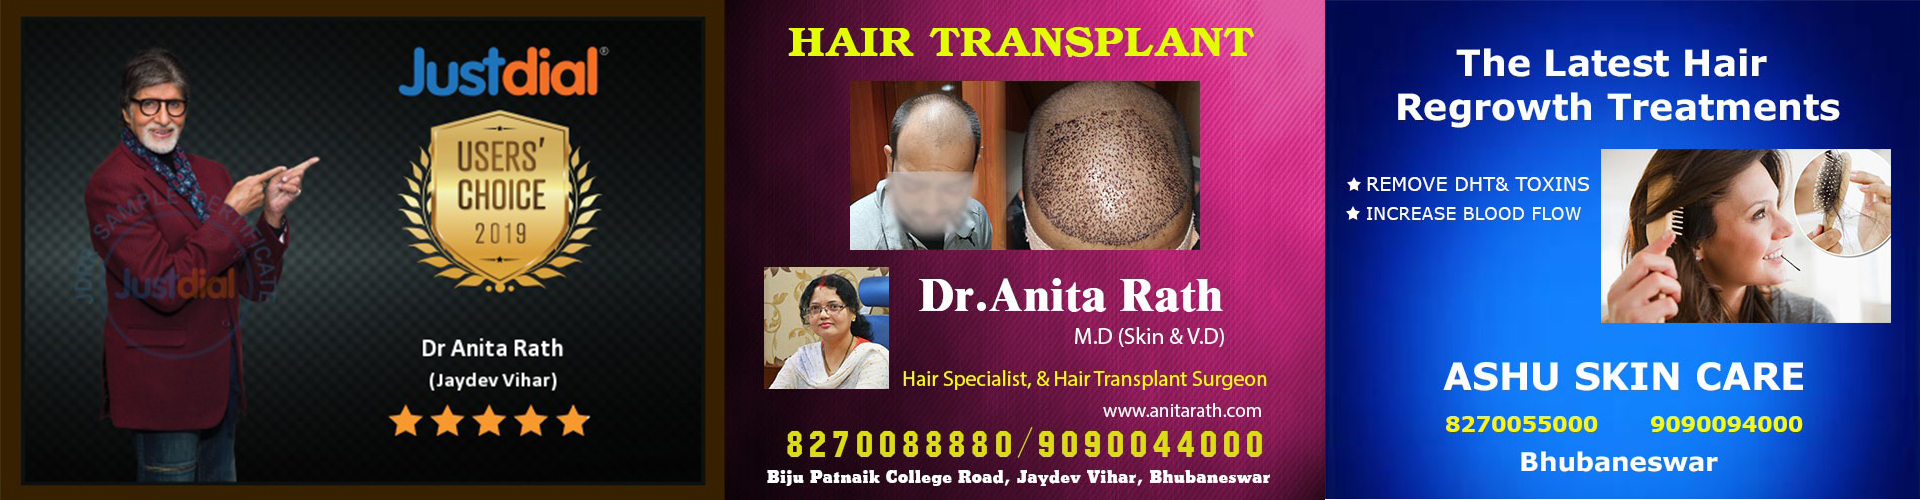 Hair transplant clinic in bhubaneswar